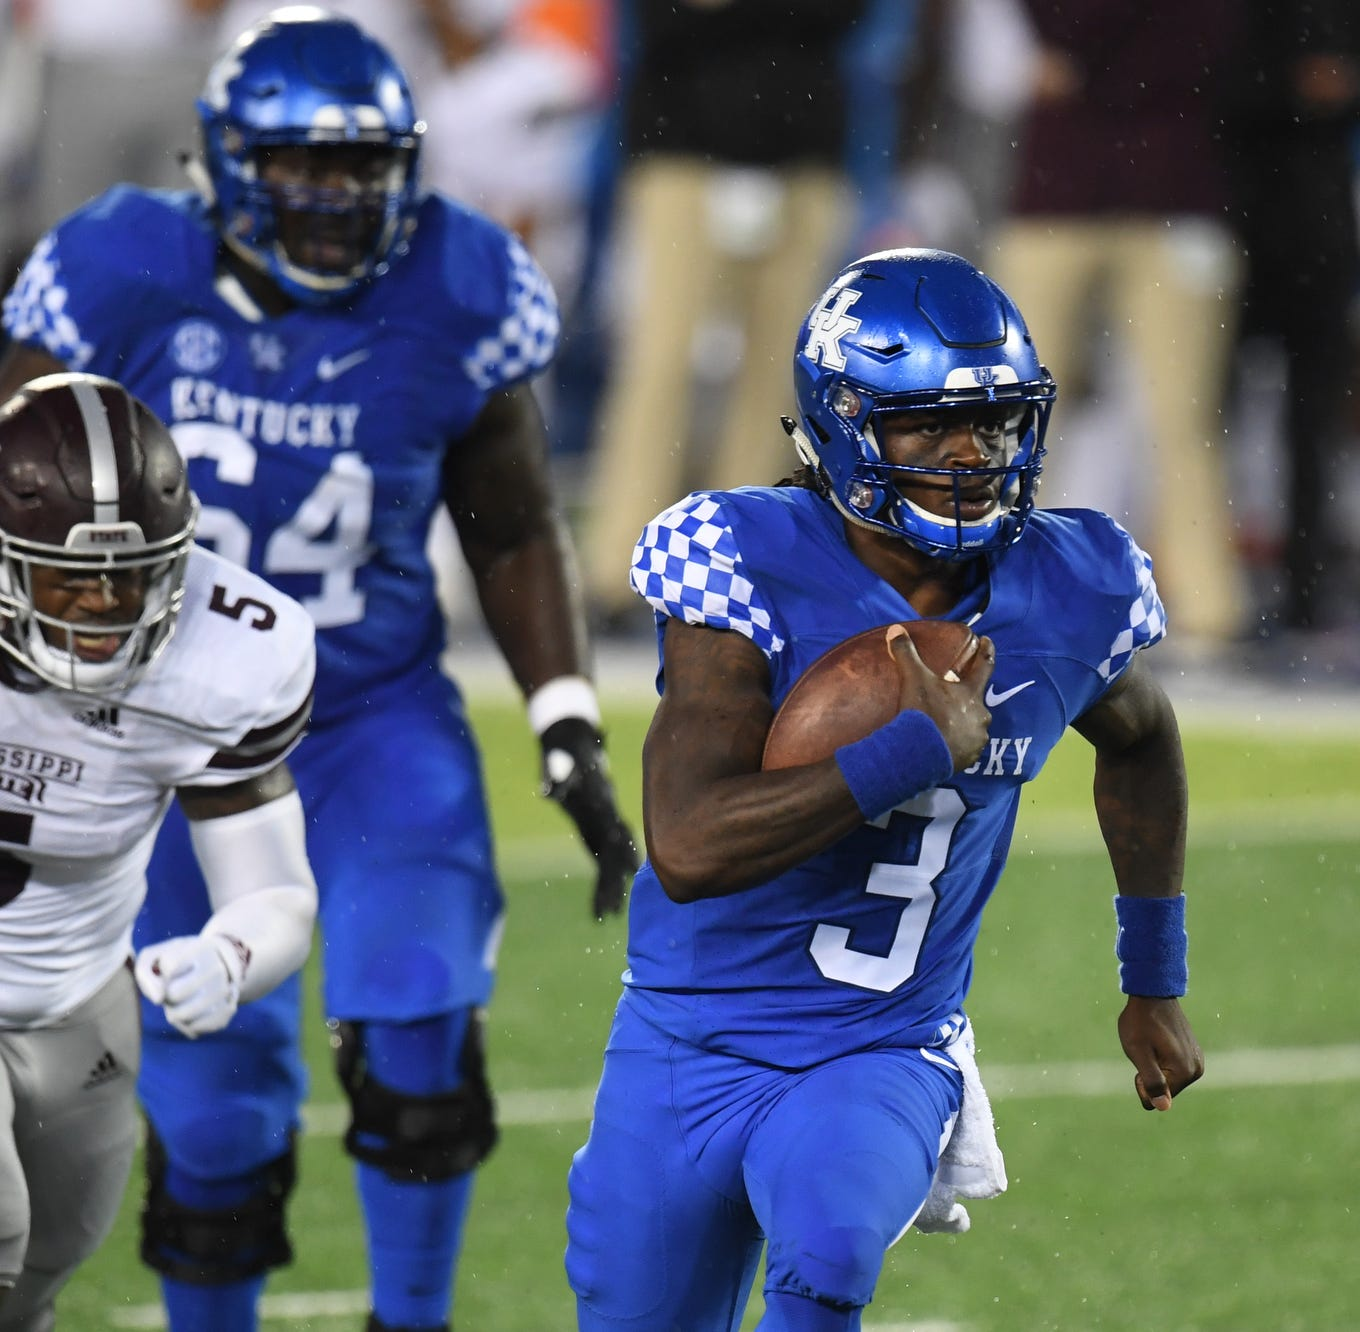 UK Insider: How high can upstart Kentucky football climb in 2018?